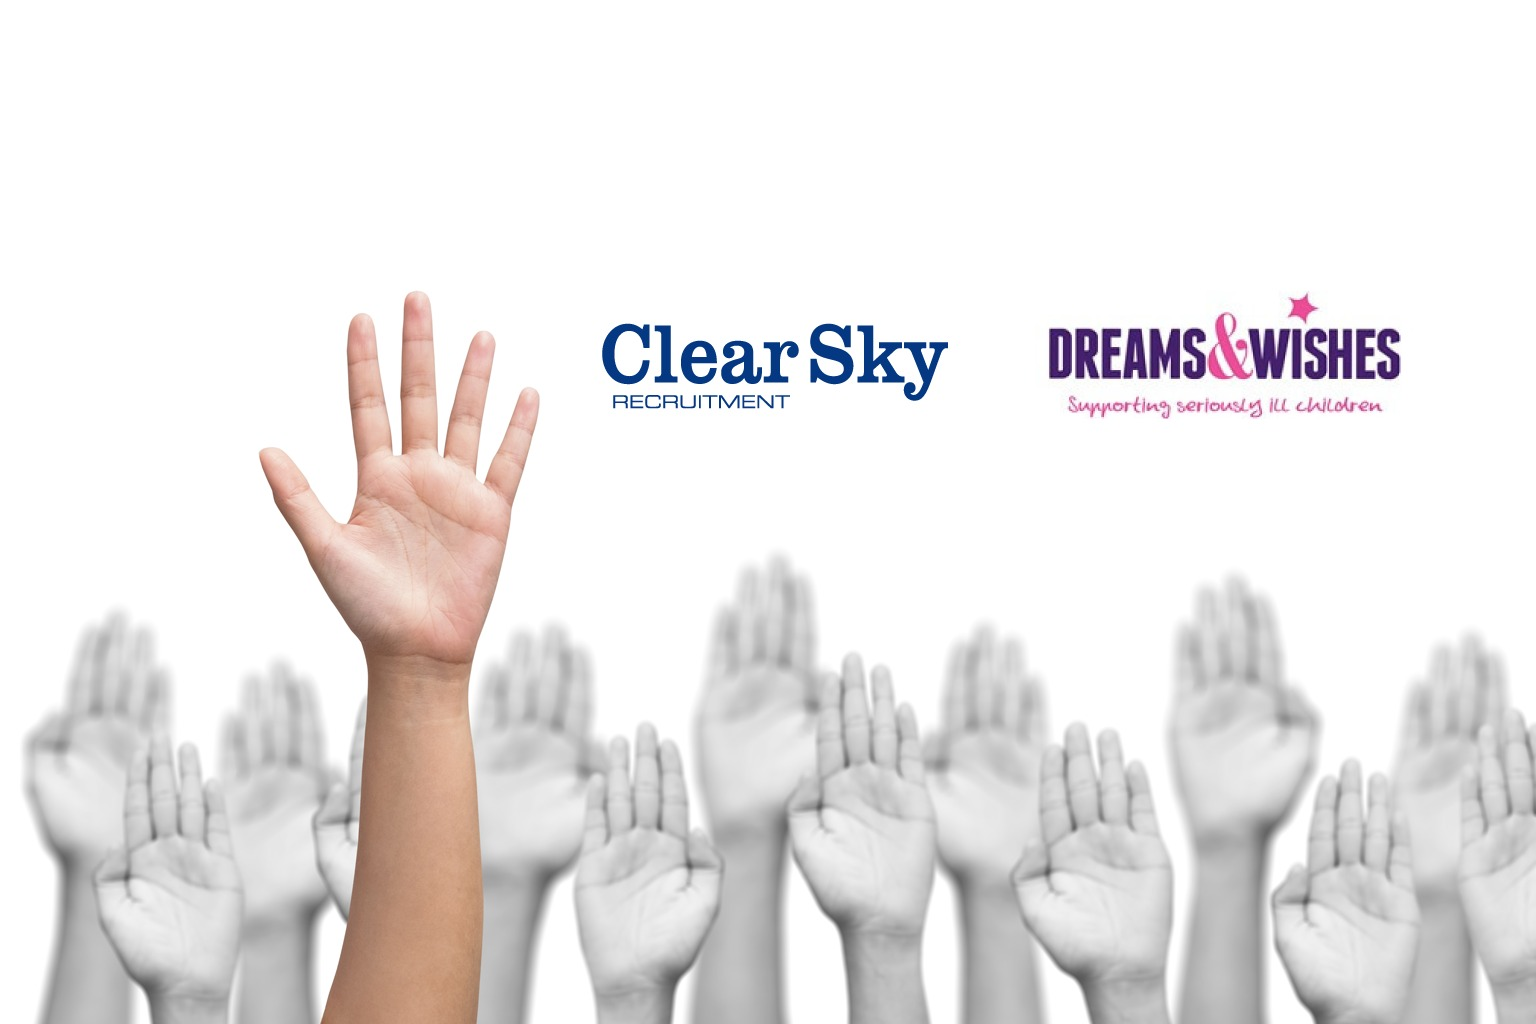 Recruitment firm ClearSky helps charity